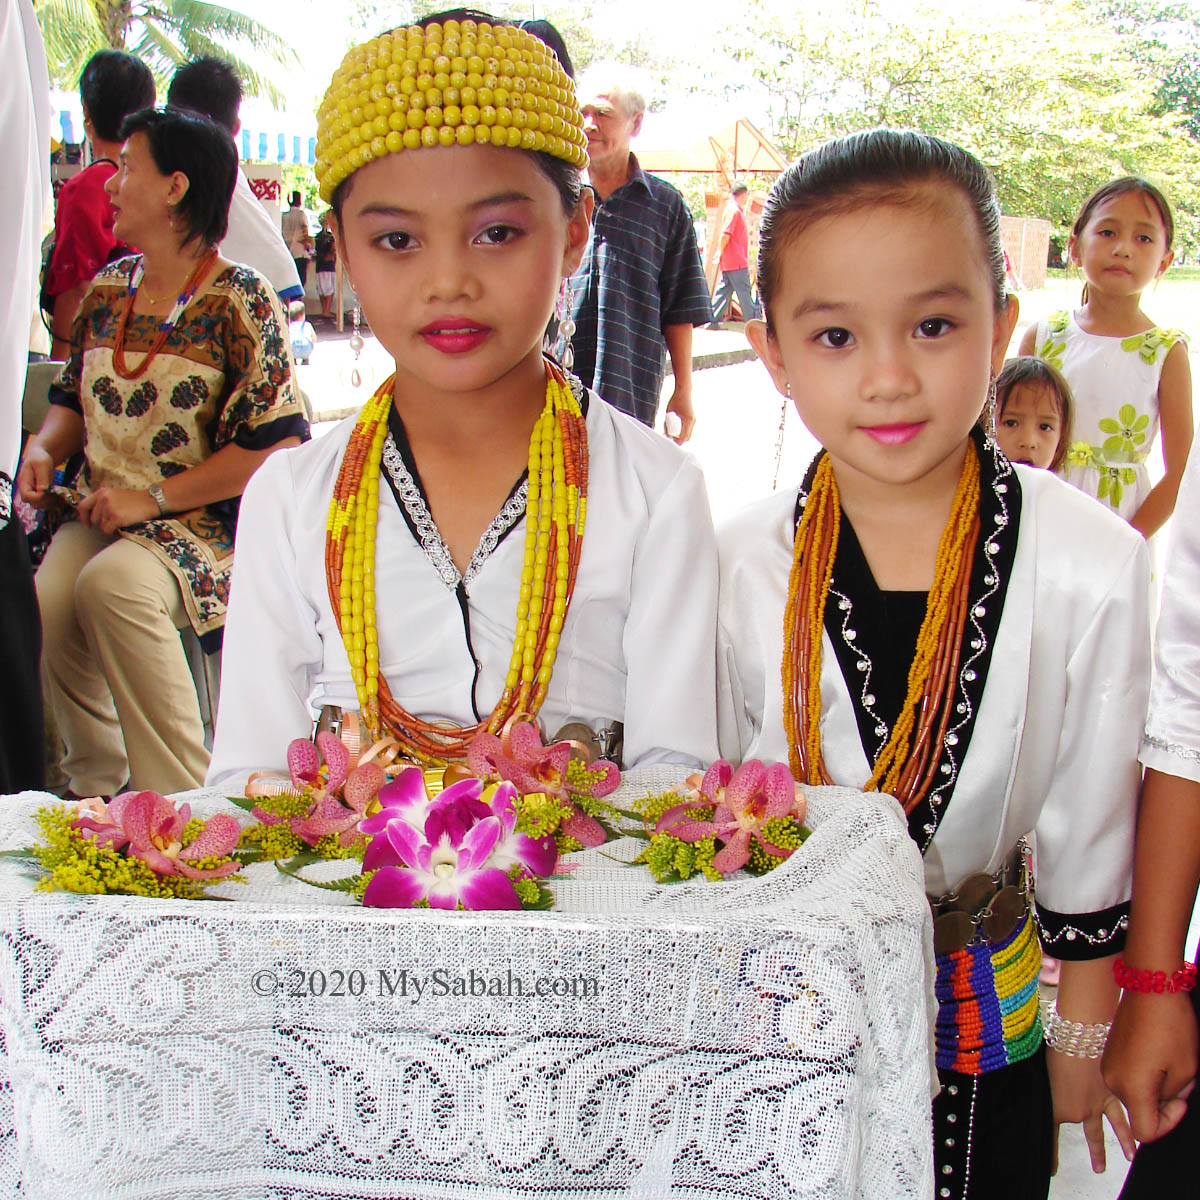 Cute Lundayeh flower girls in Sipitang